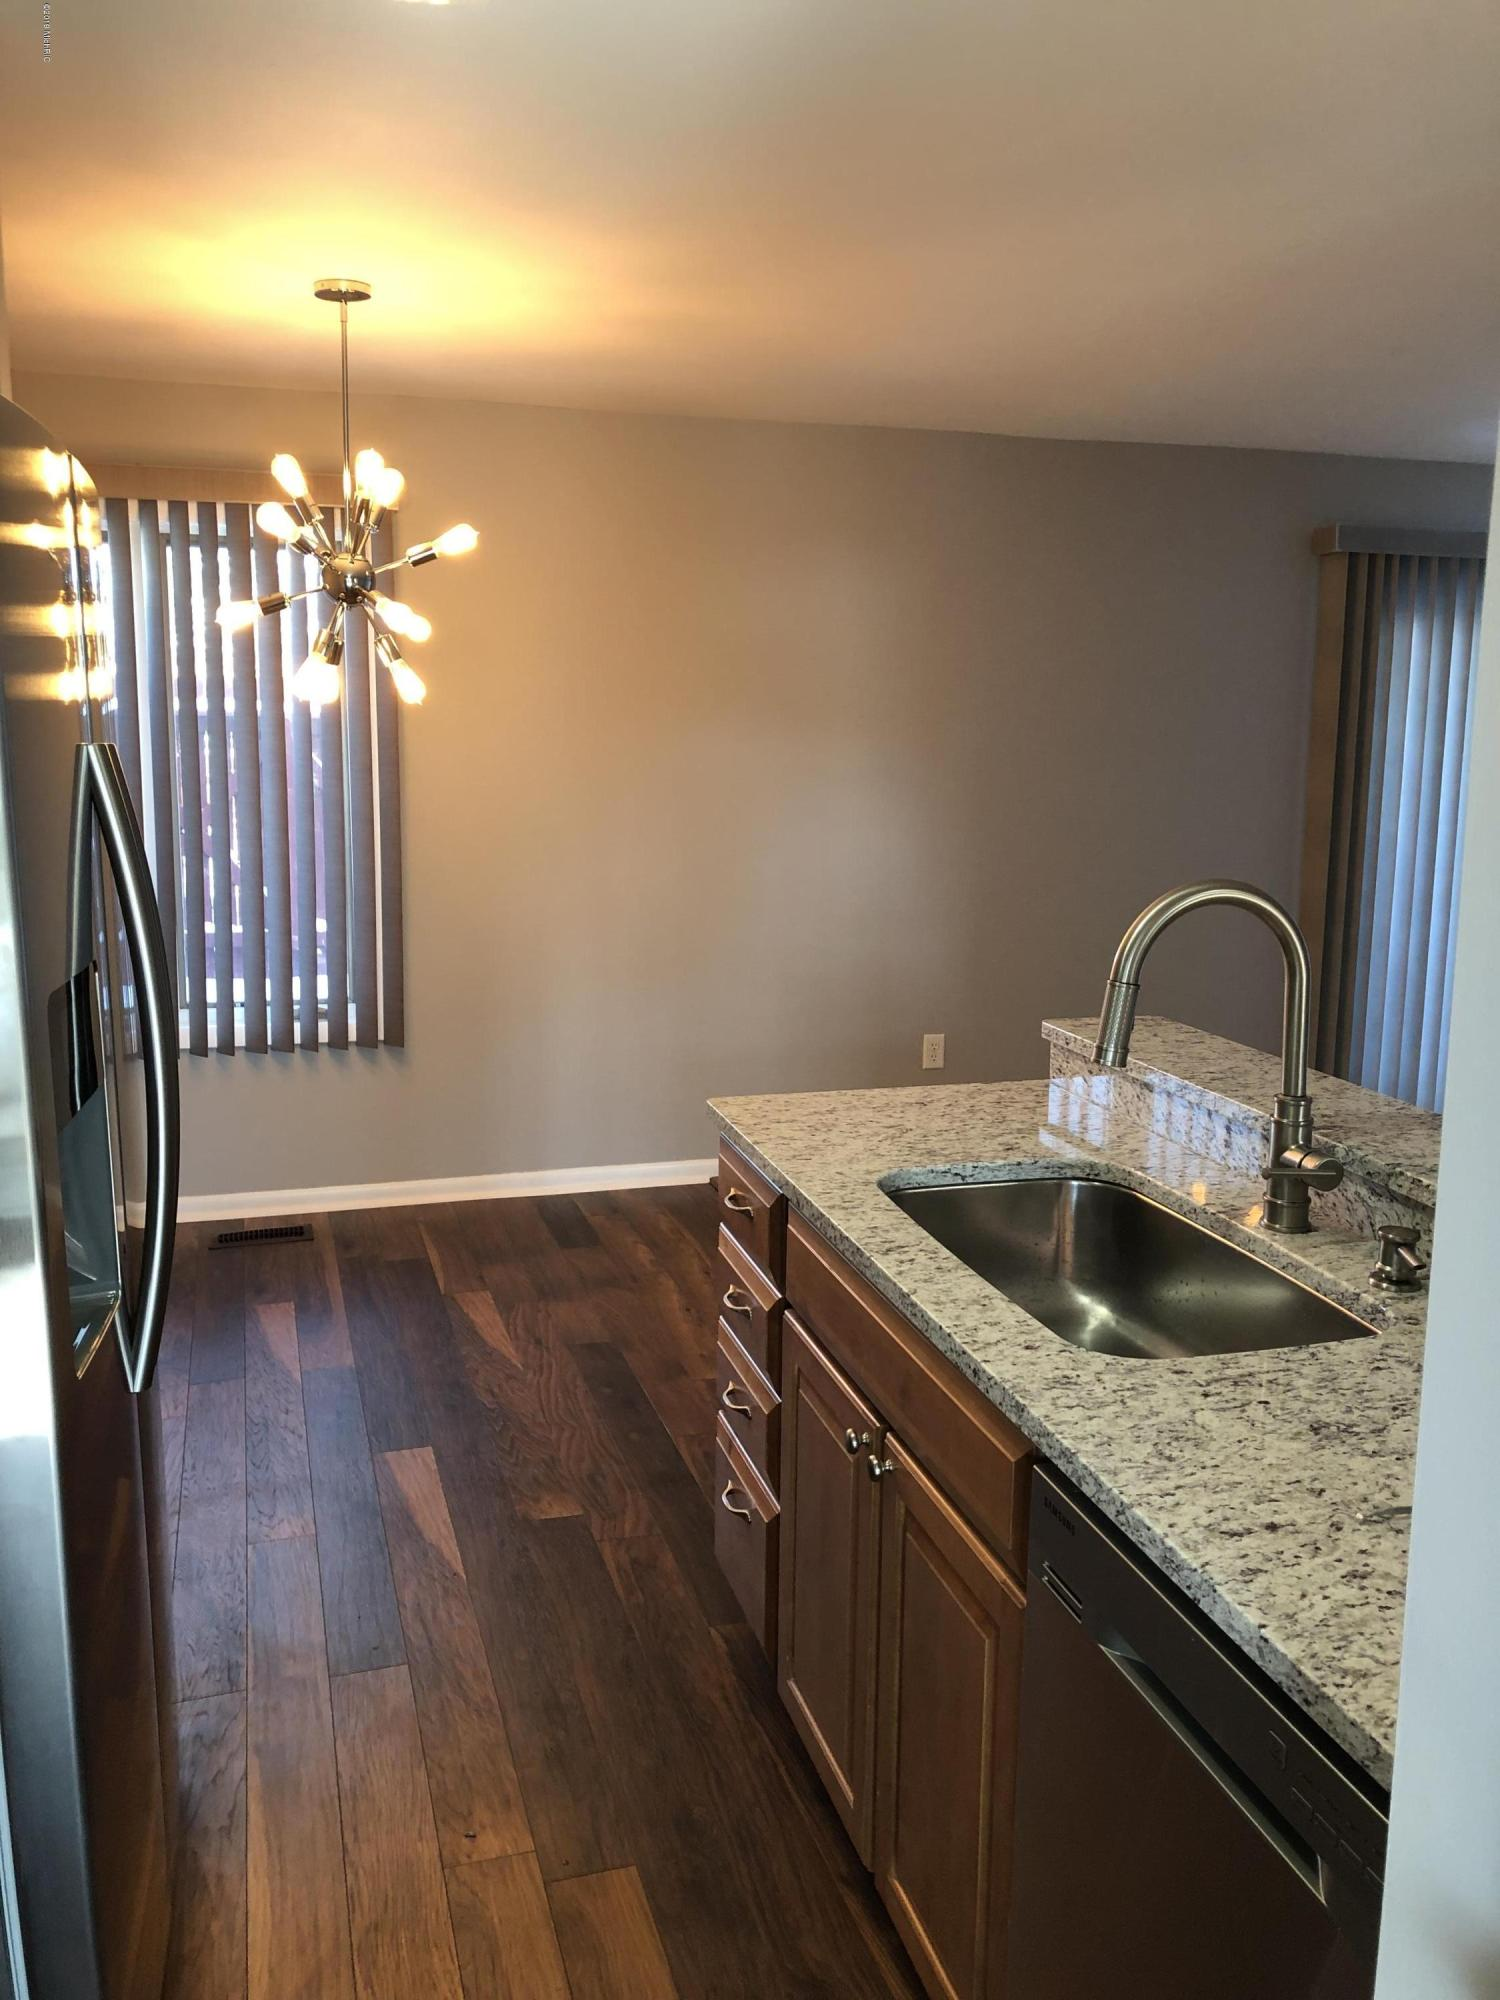 6265 Architrave Drive, Grand Rapids, Michigan 49546, 3 Bedrooms Bedrooms, ,3 BathroomsBathrooms,Residential,For Sale,Forest Hills Condominium,Architrave,19004842